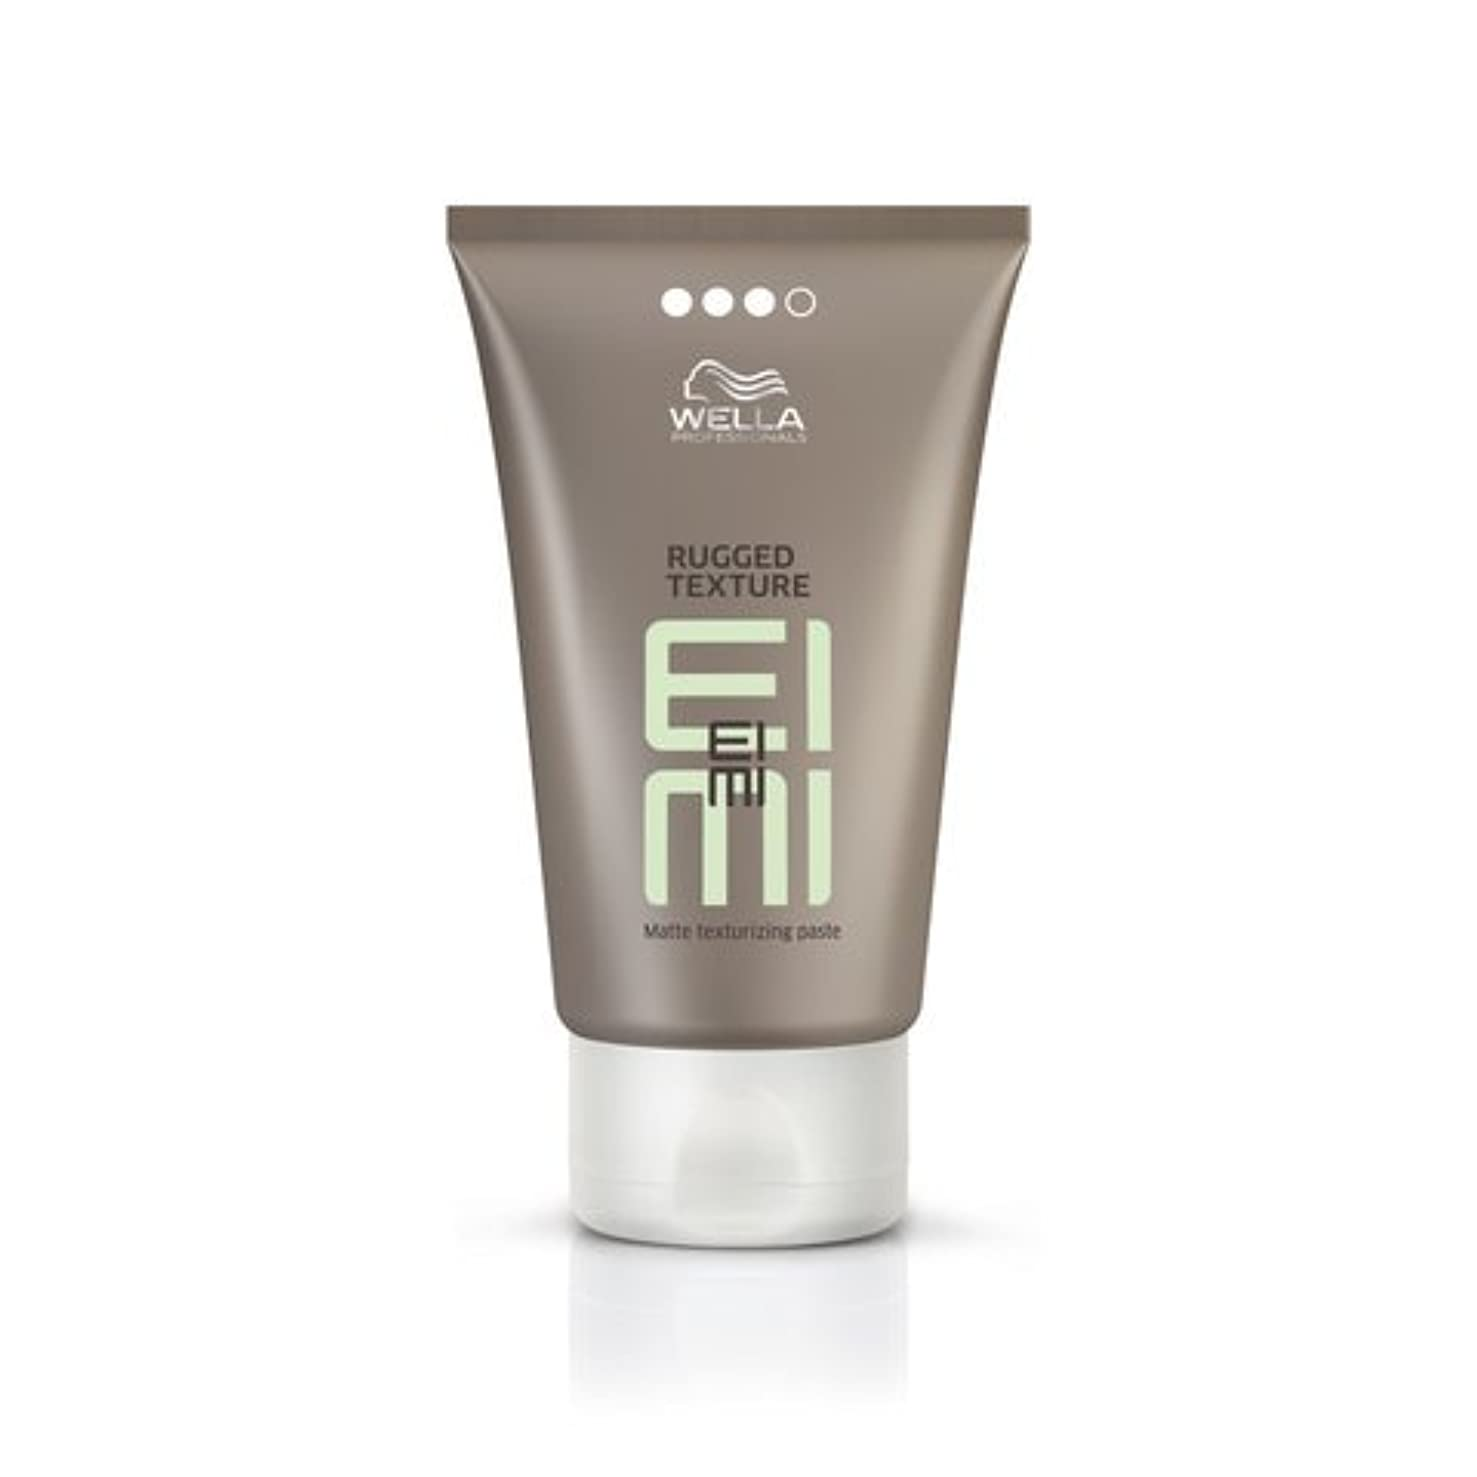 溶けたコピー見捨てるWella EIMI Rugged Texture - Matte Texturising Paste 75 ml [並行輸入品]